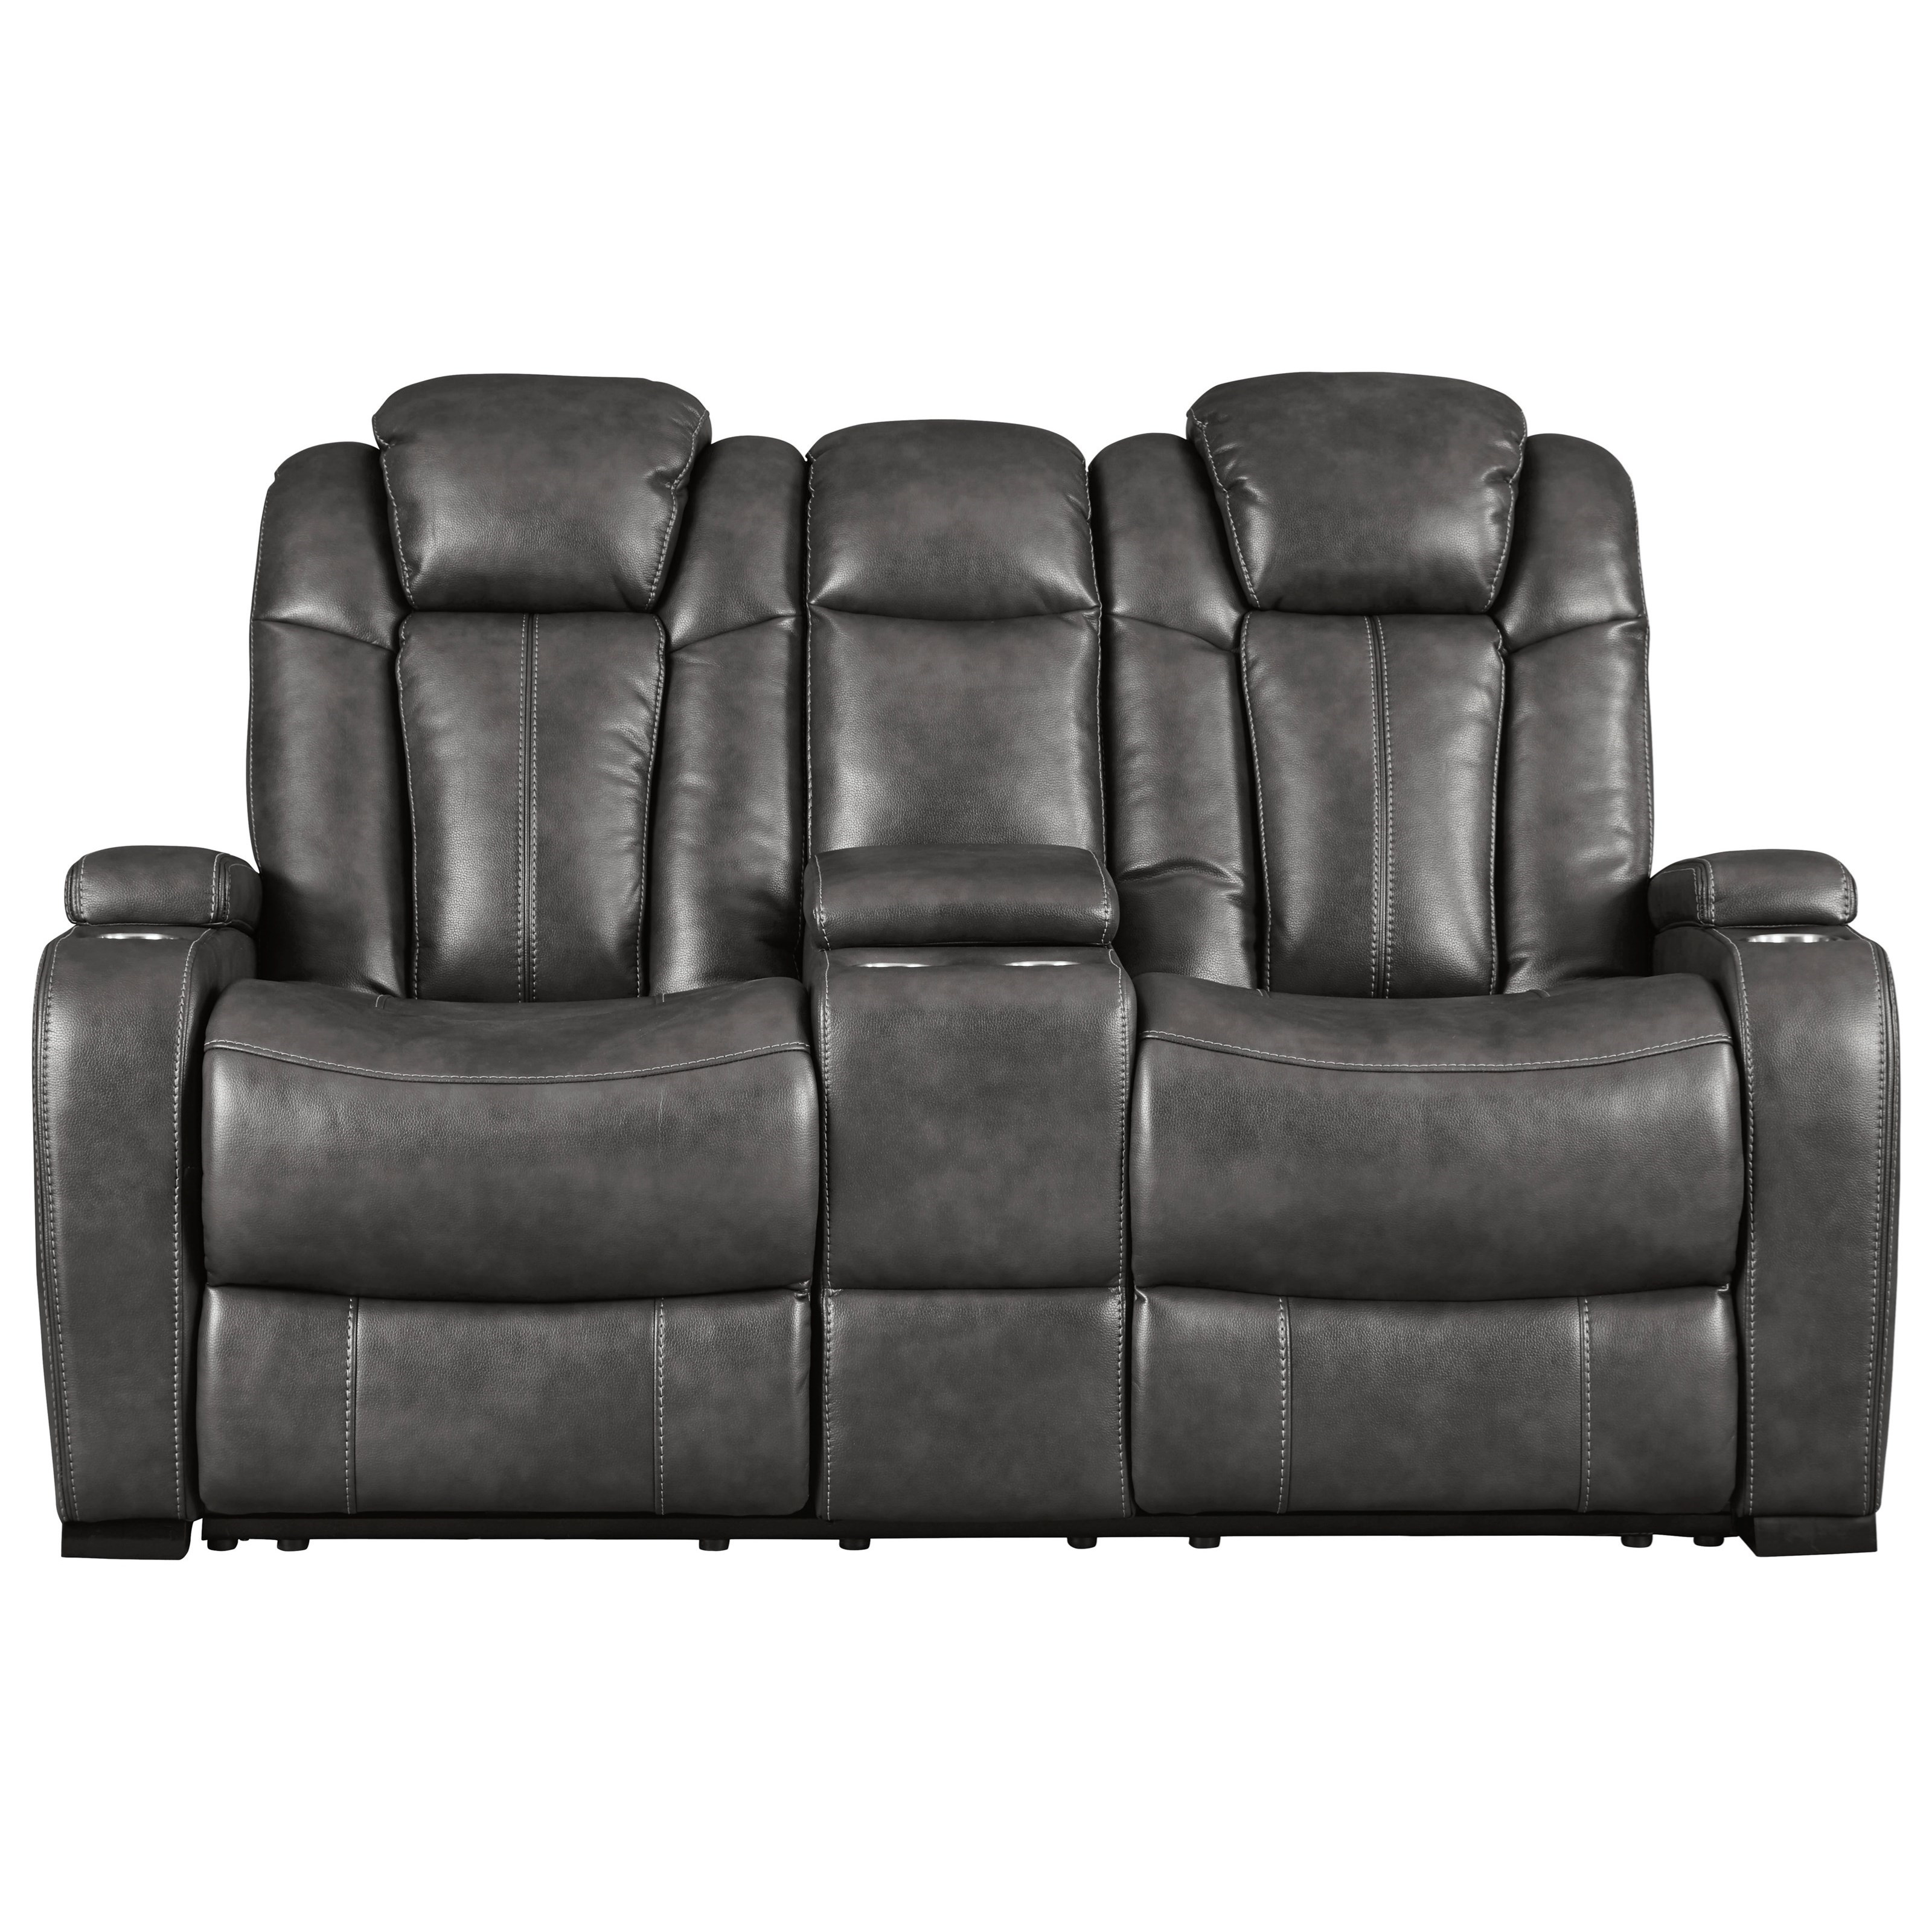 Turbulance Power Reclining Loveseat w/ Cnsl & Pwr Hdrst by Signature Design by Ashley at Northeast Factory Direct